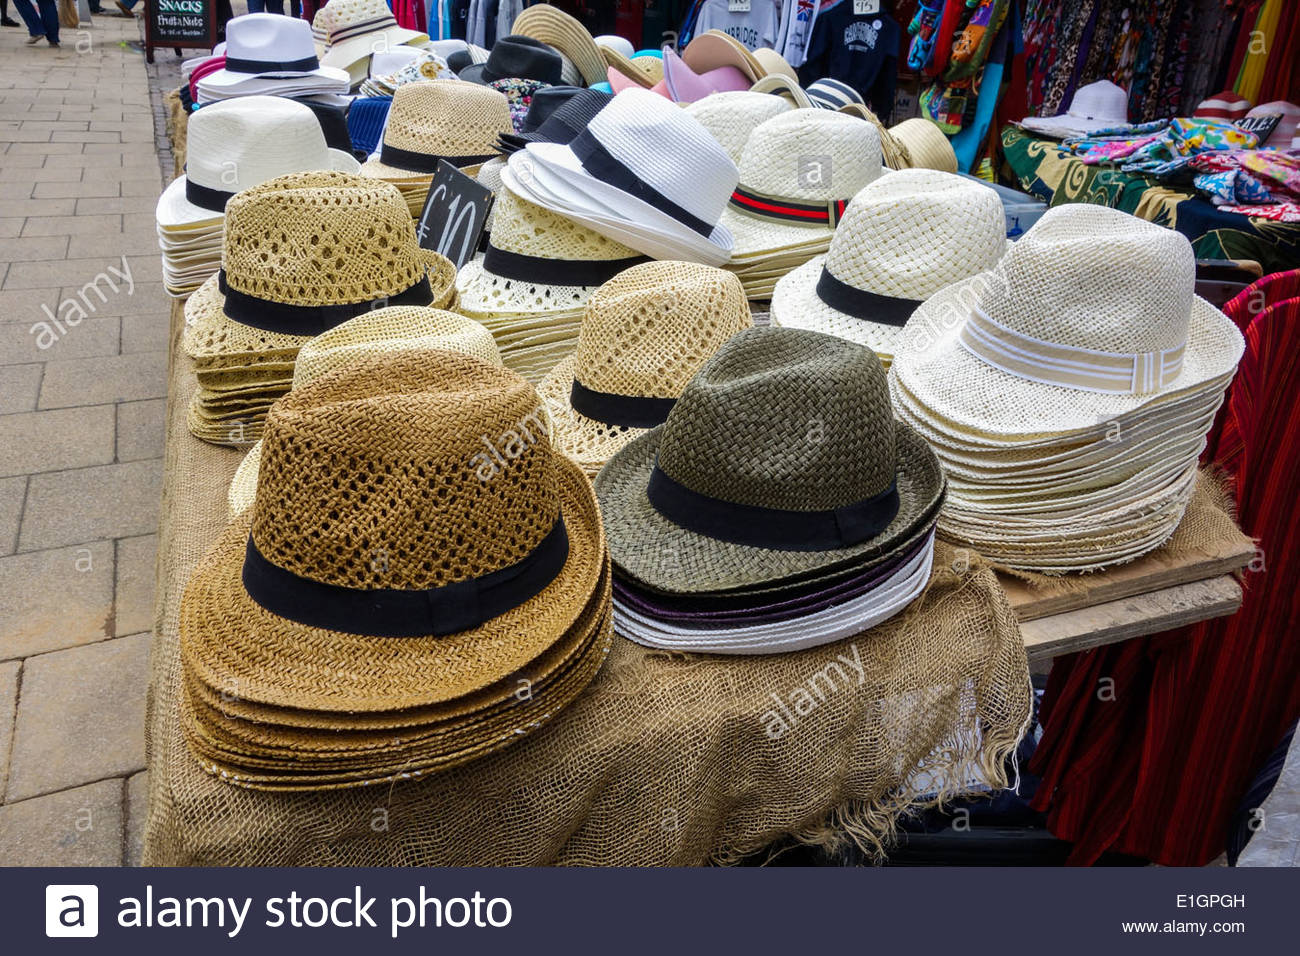 Summer Hat Stall Stock Photos   Summer Hat Stall Stock Images - Alamy 897c500da3f